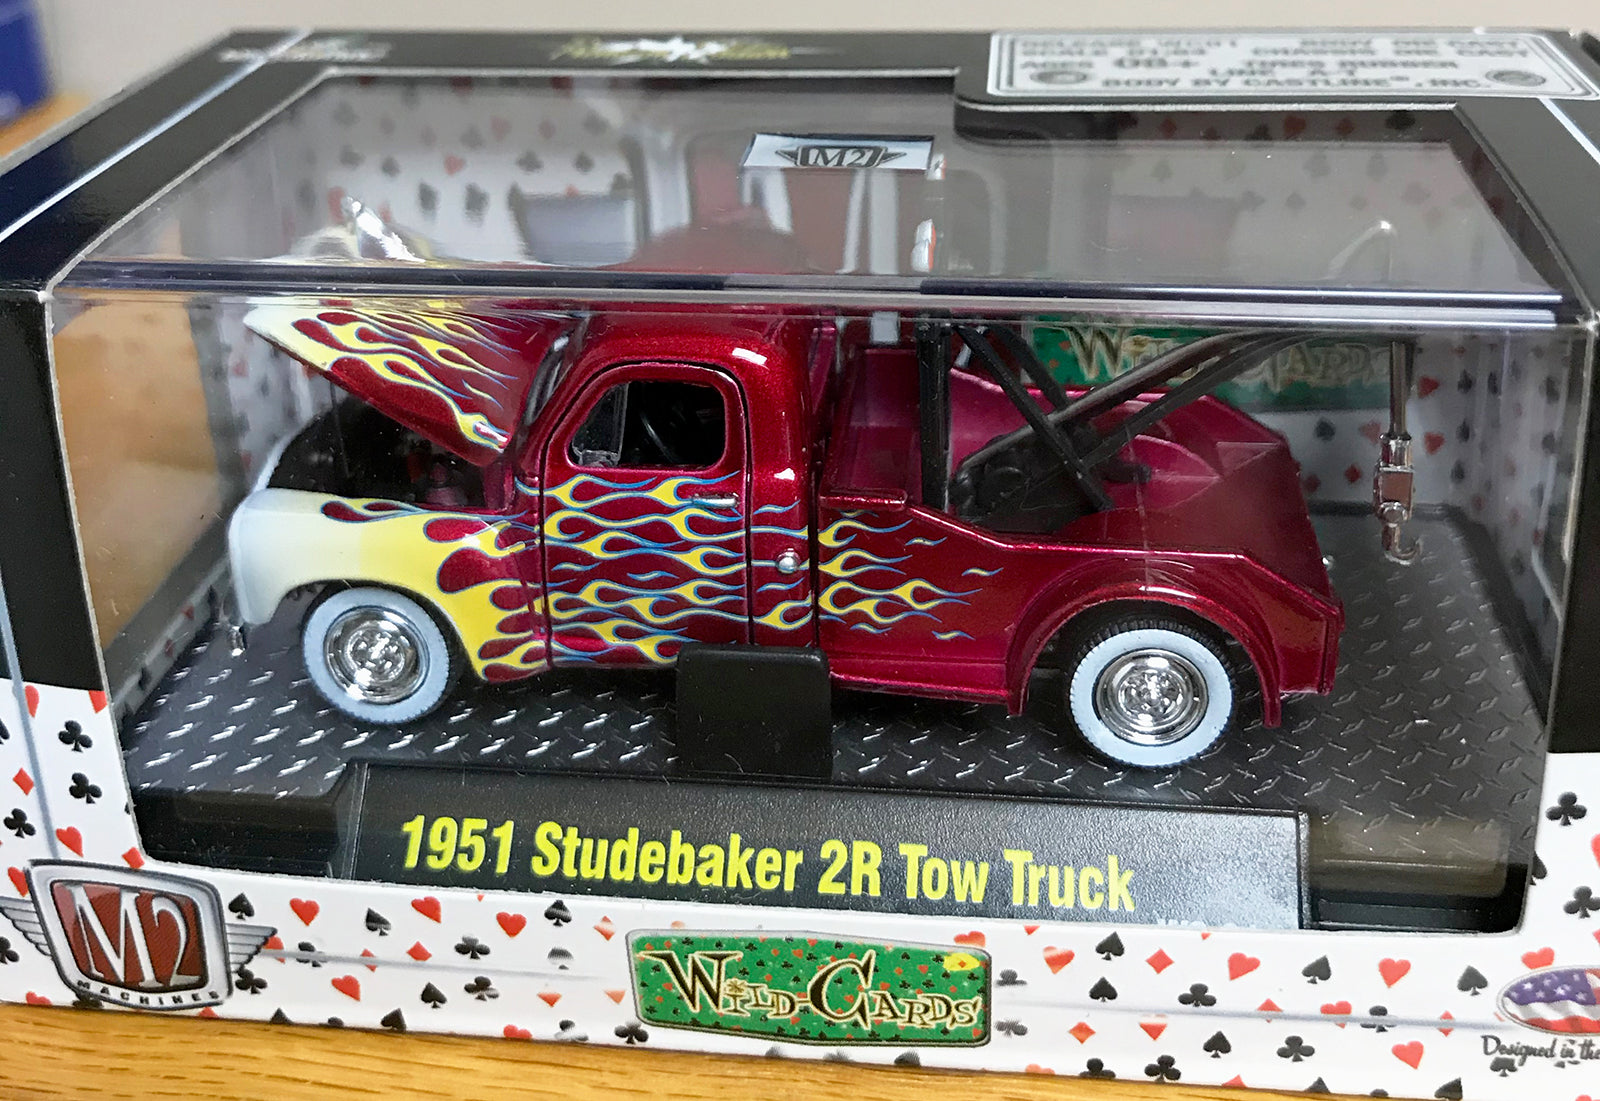 S 1951 Studebaker 2R Tow Truck - Red